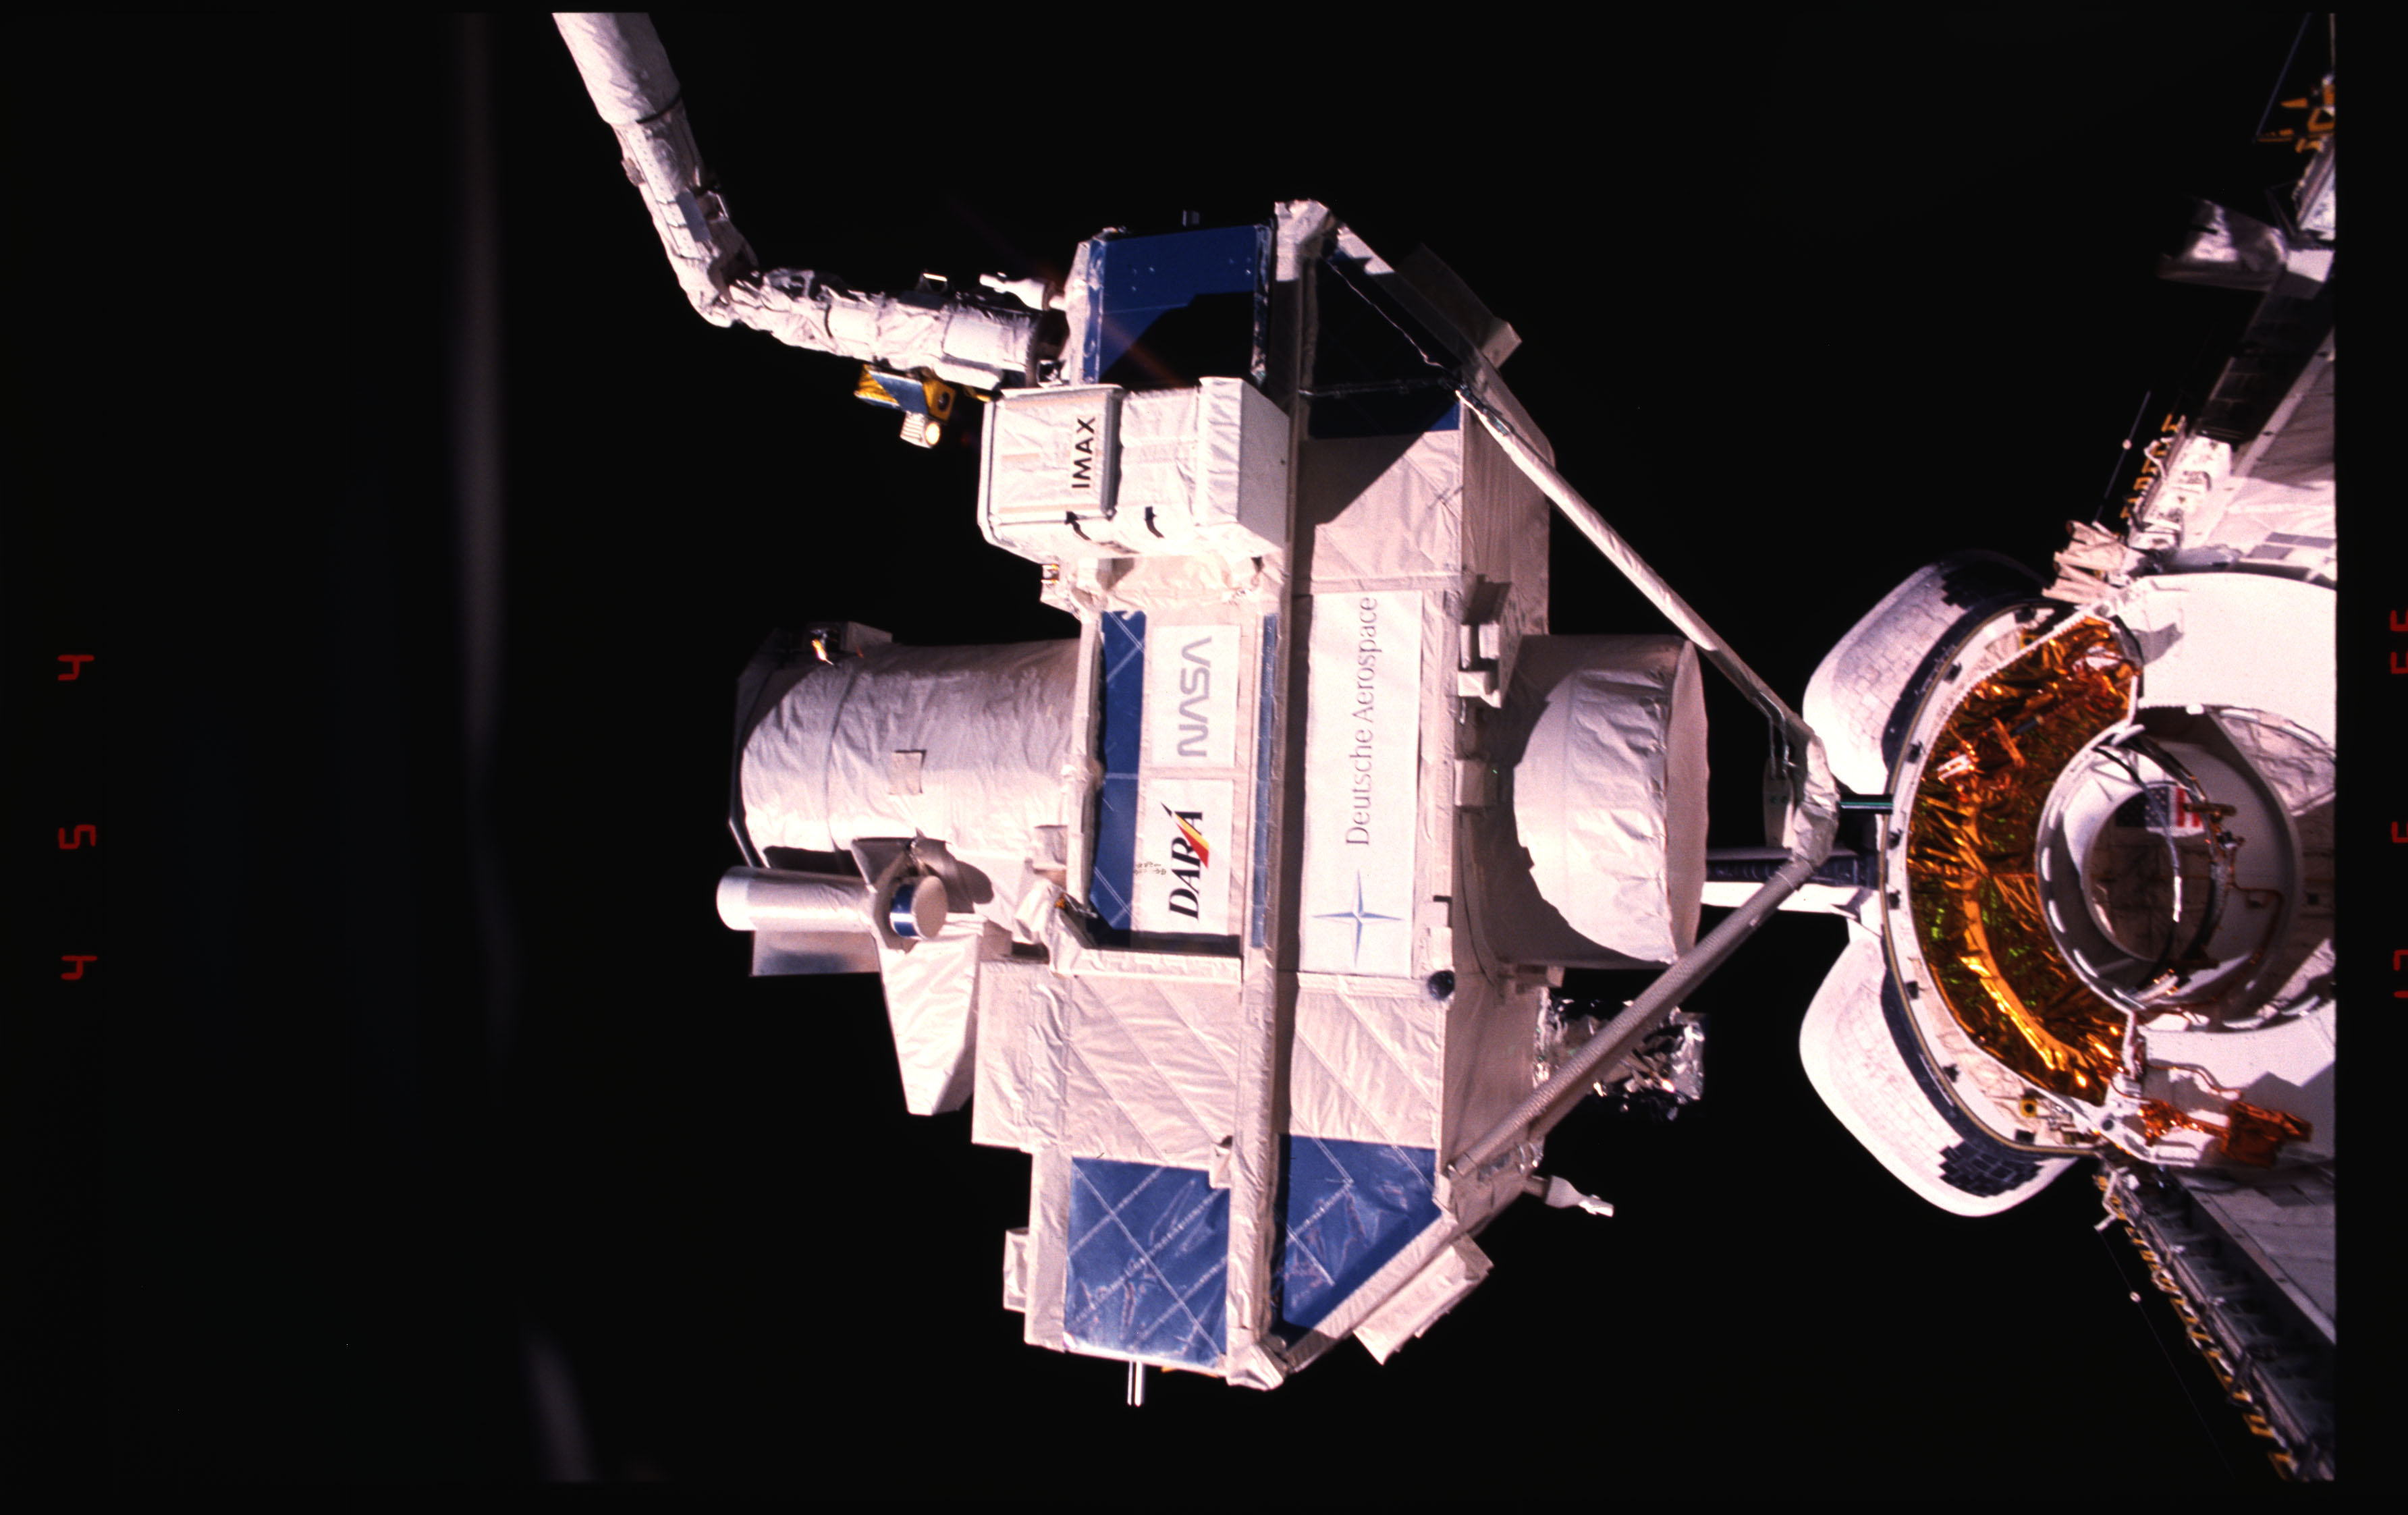 STS051-15-027 - STS-051 - OREFEUS-SPAS: ORFEUS-SPAS hovers over the payload bay on RMS